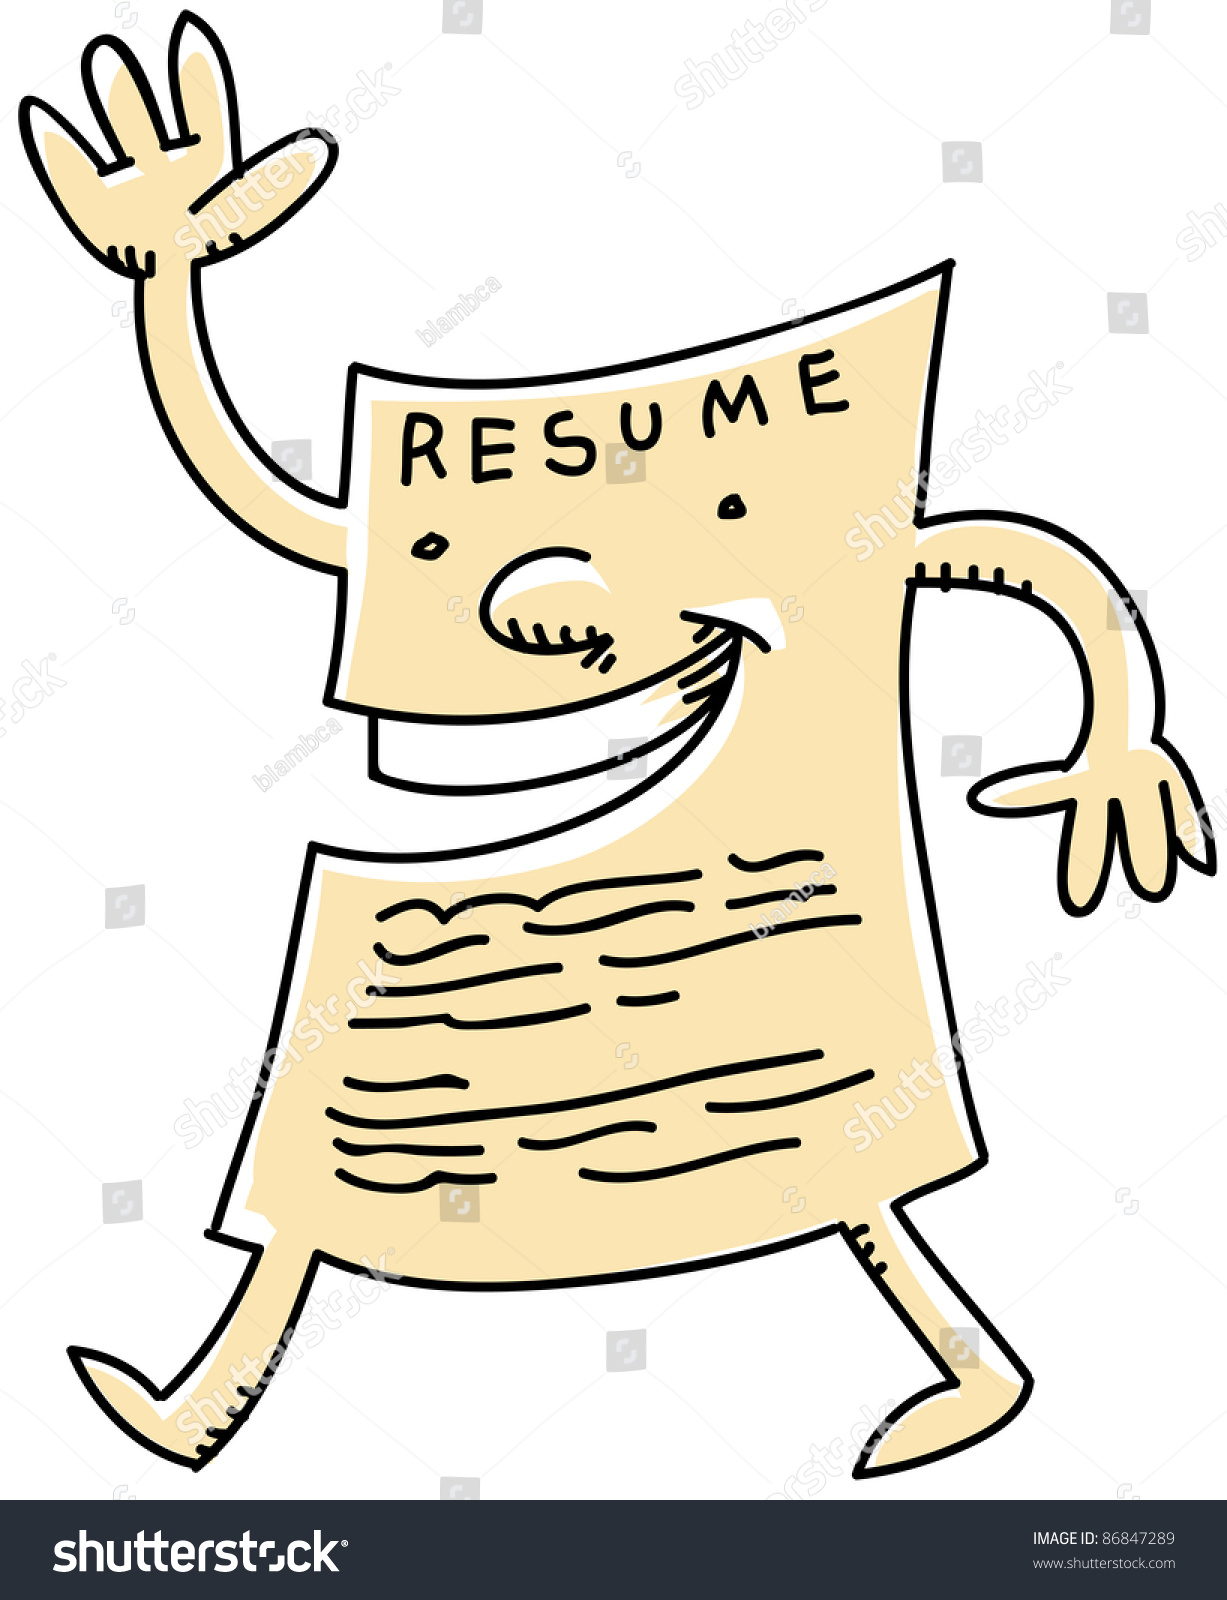 List of Synonyms and Antonyms of the Word: resume cartoon